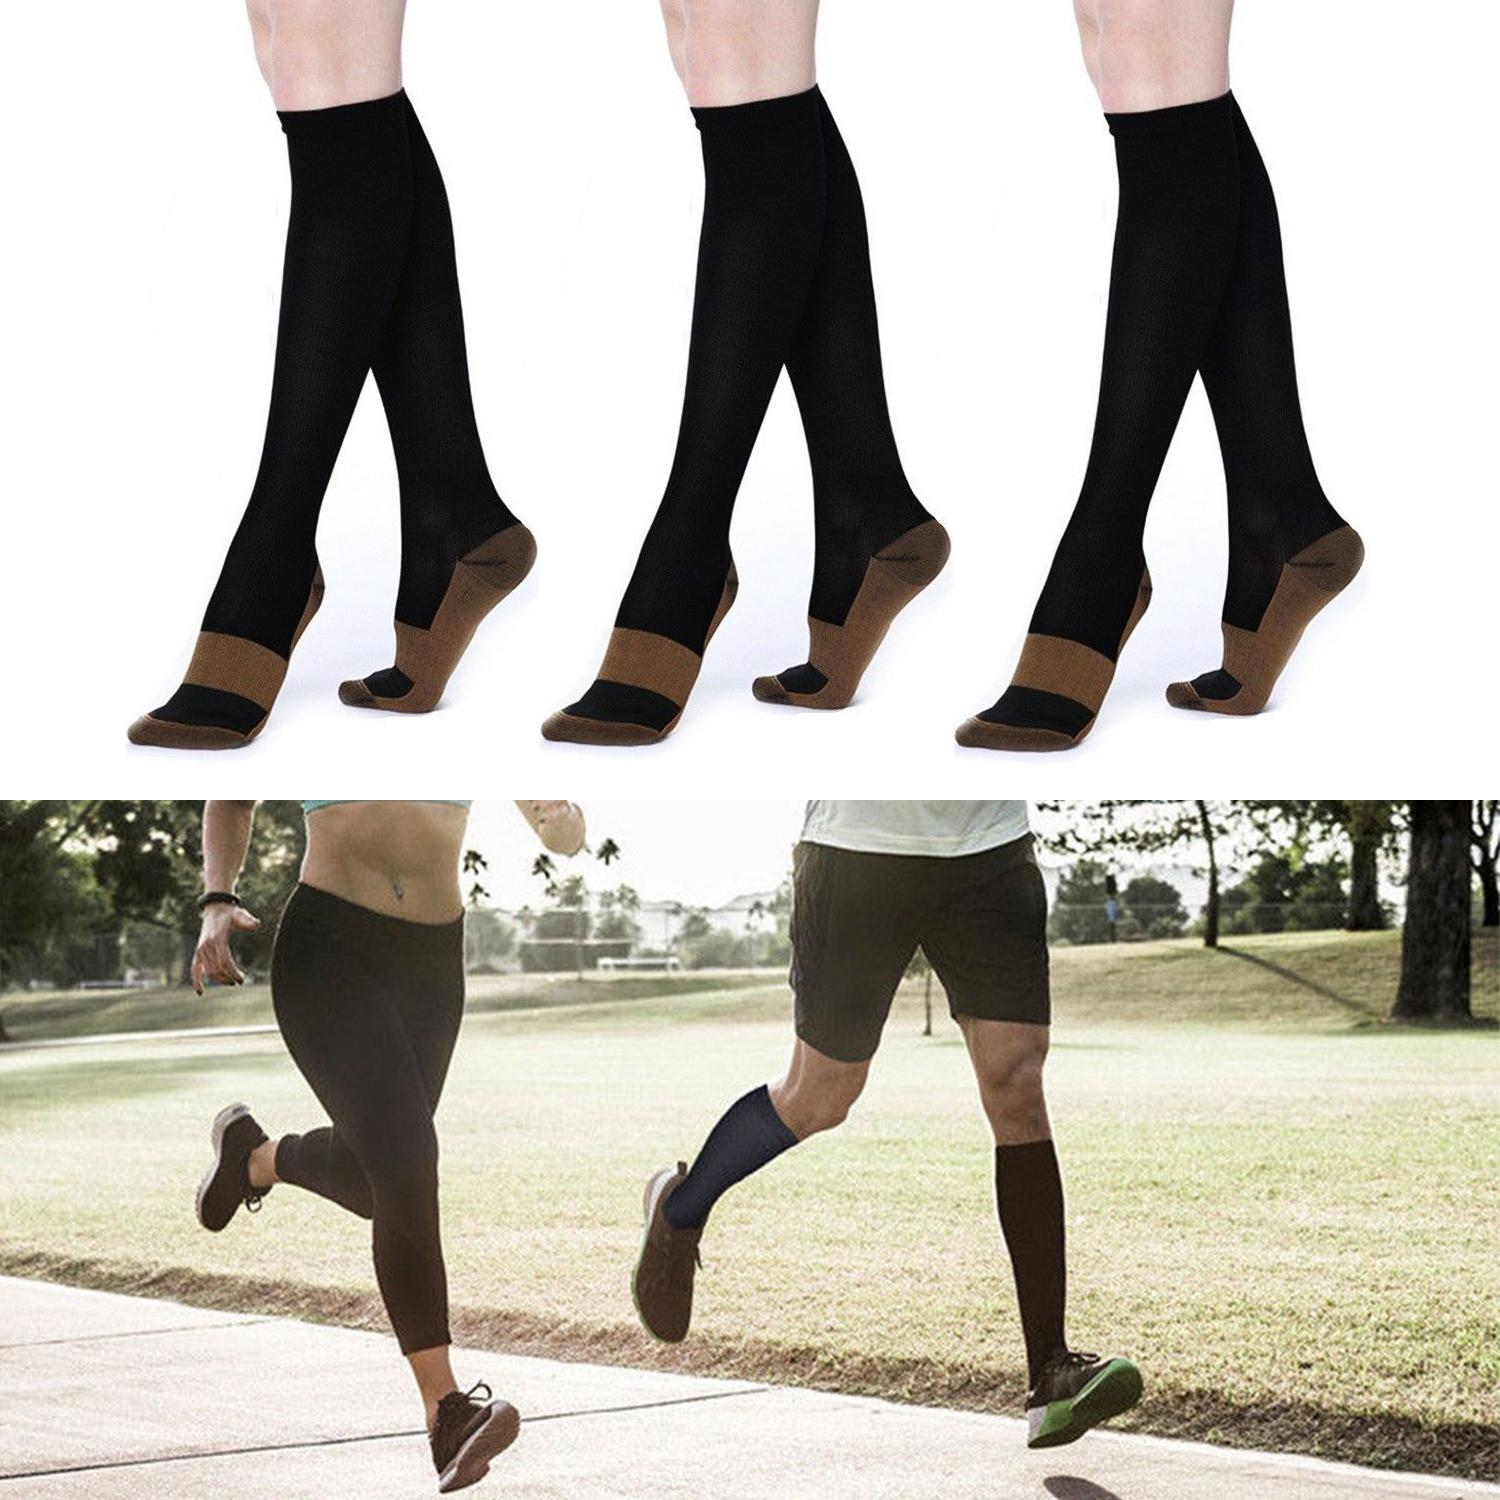 10fa2d408a 2 Pairs Miracle Copper Compression Socks Anti Fatigue Unisex Travel DVT  Comfort 0-30mmHg Graduated Men's Women's Compression Socks